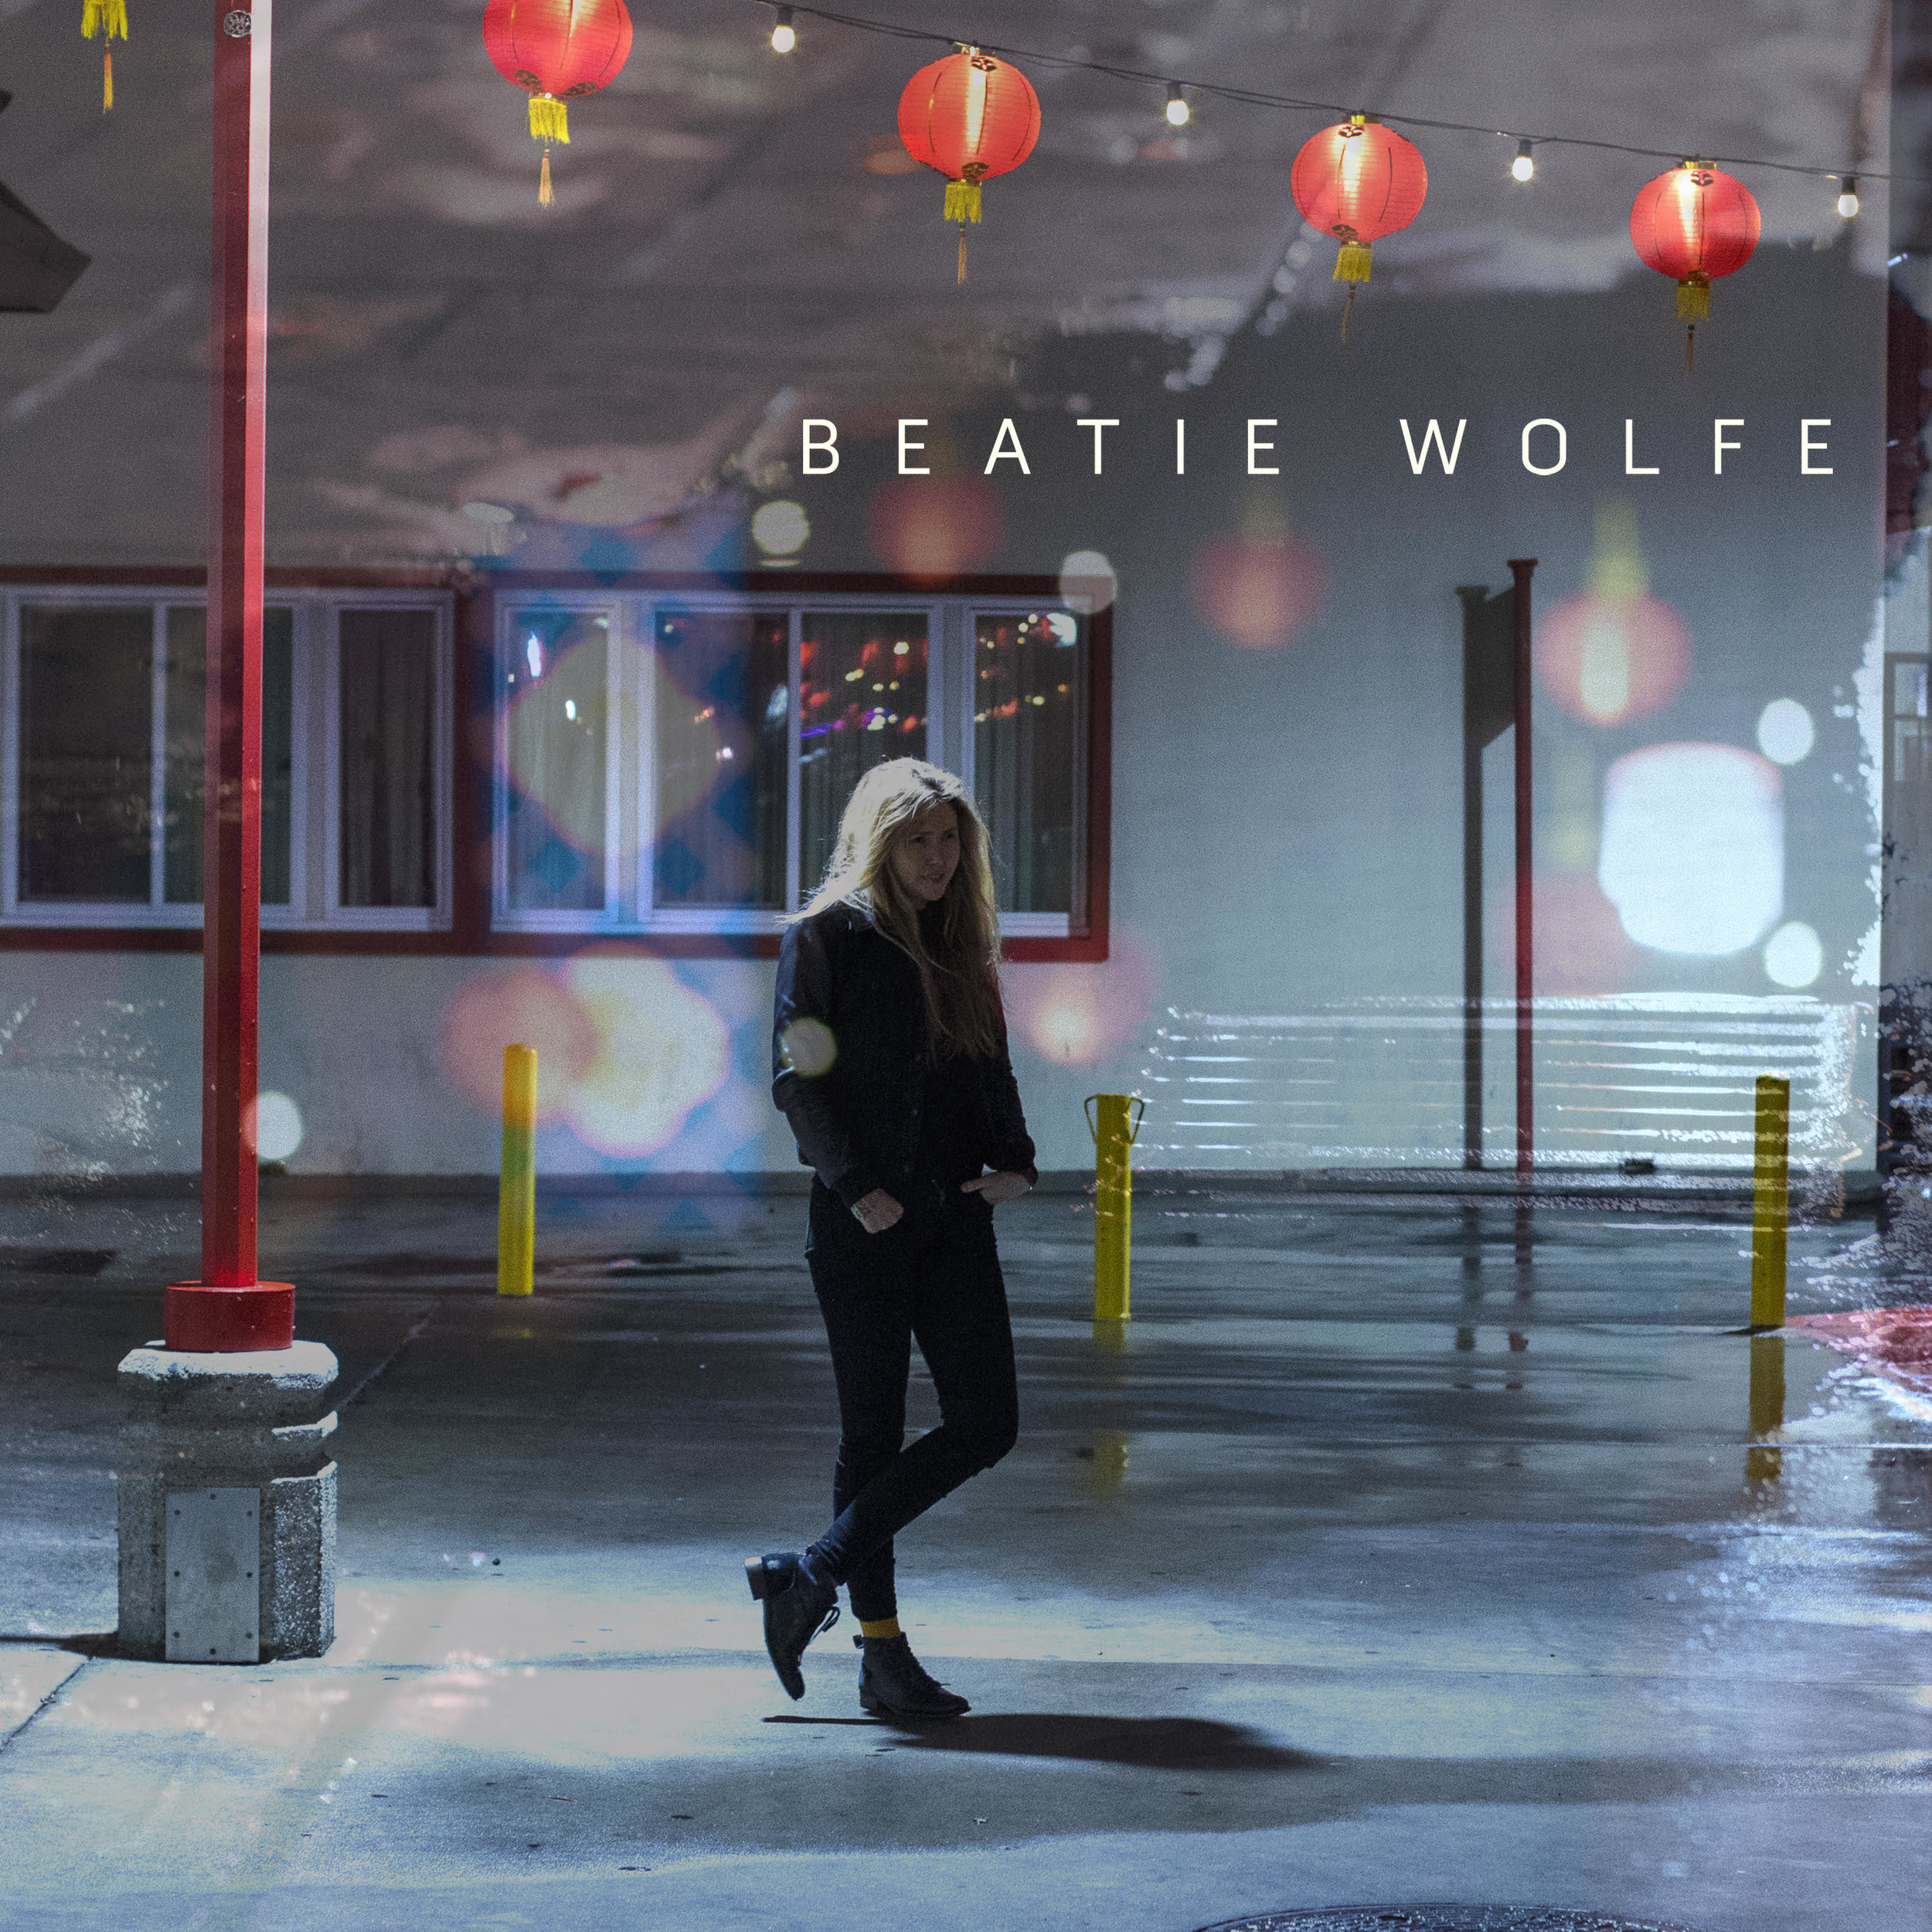 Beatie Wolfe - Barely Living cover by Ross Harris